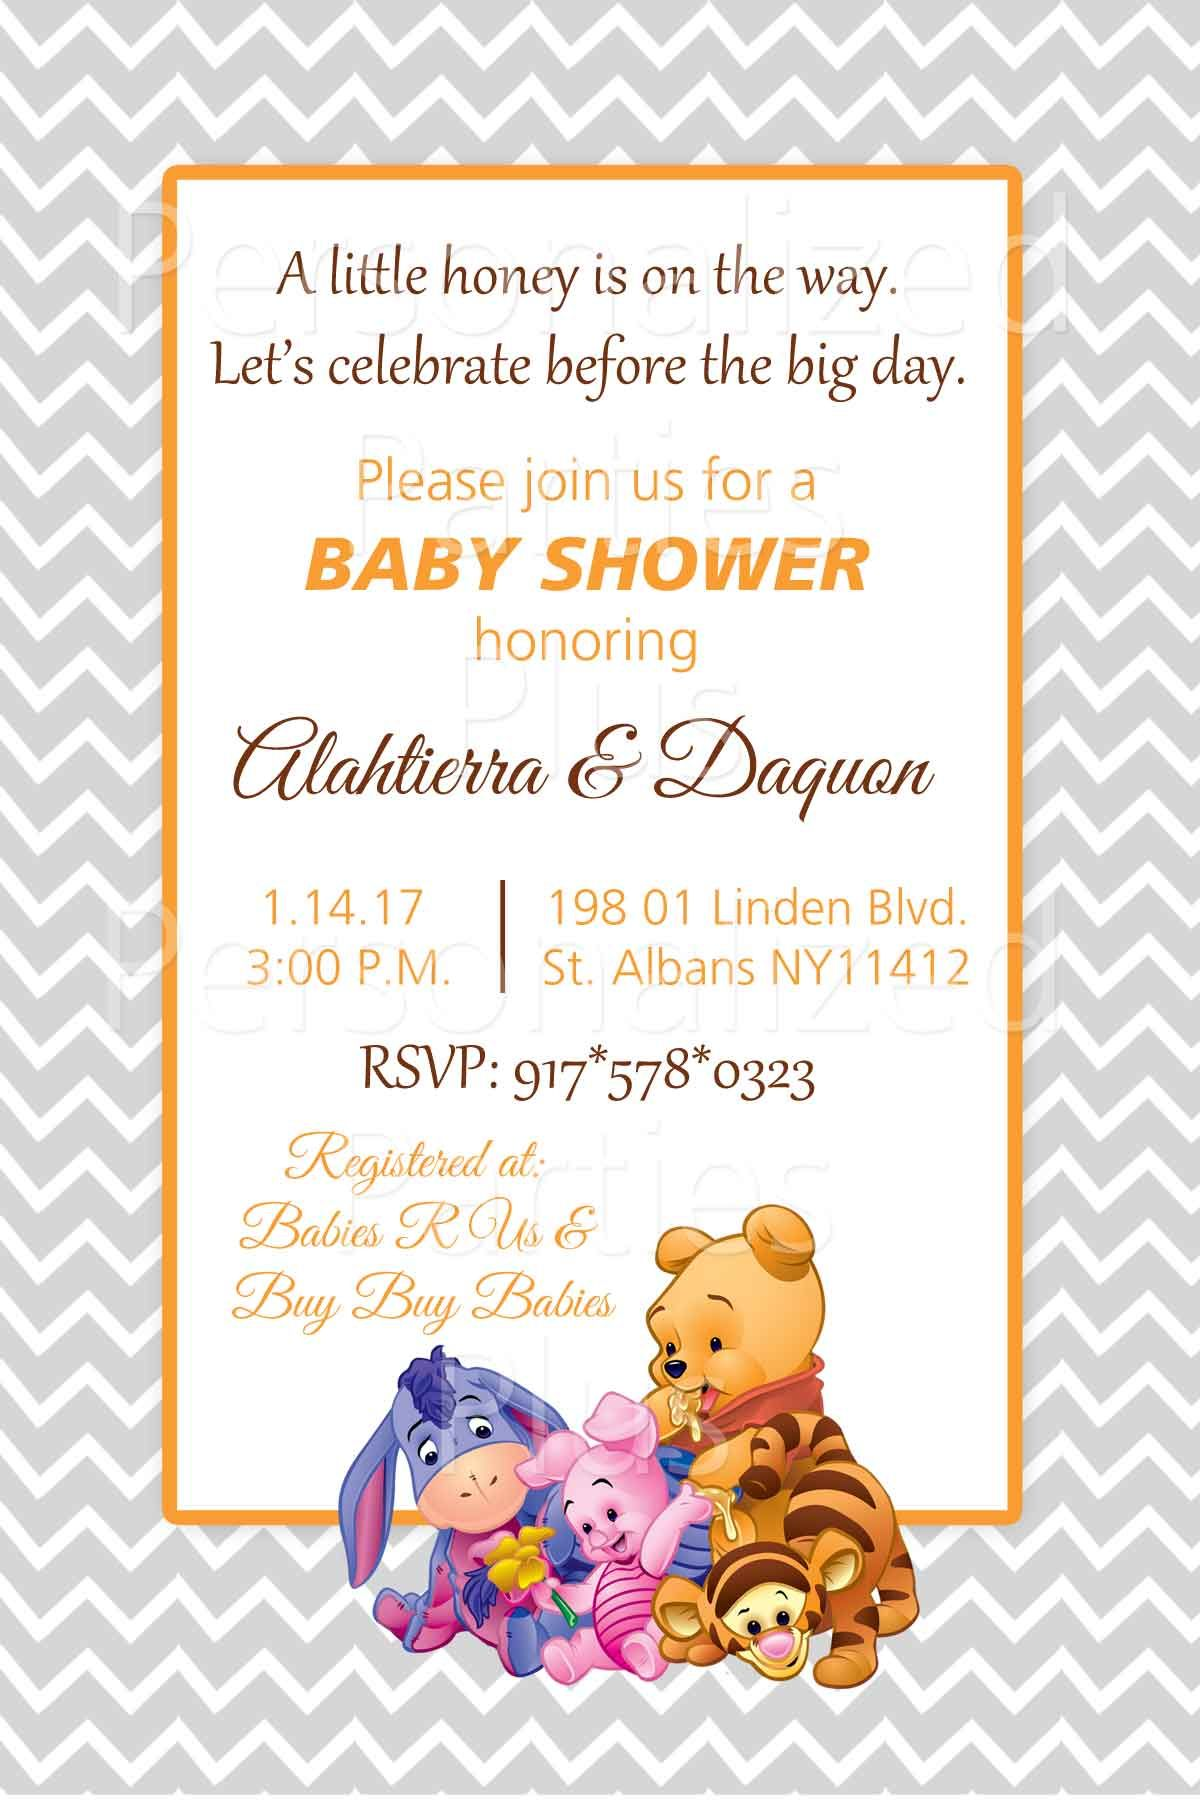 Winnie the Pooh baby shower invitation | Shower invitations, Babies ...